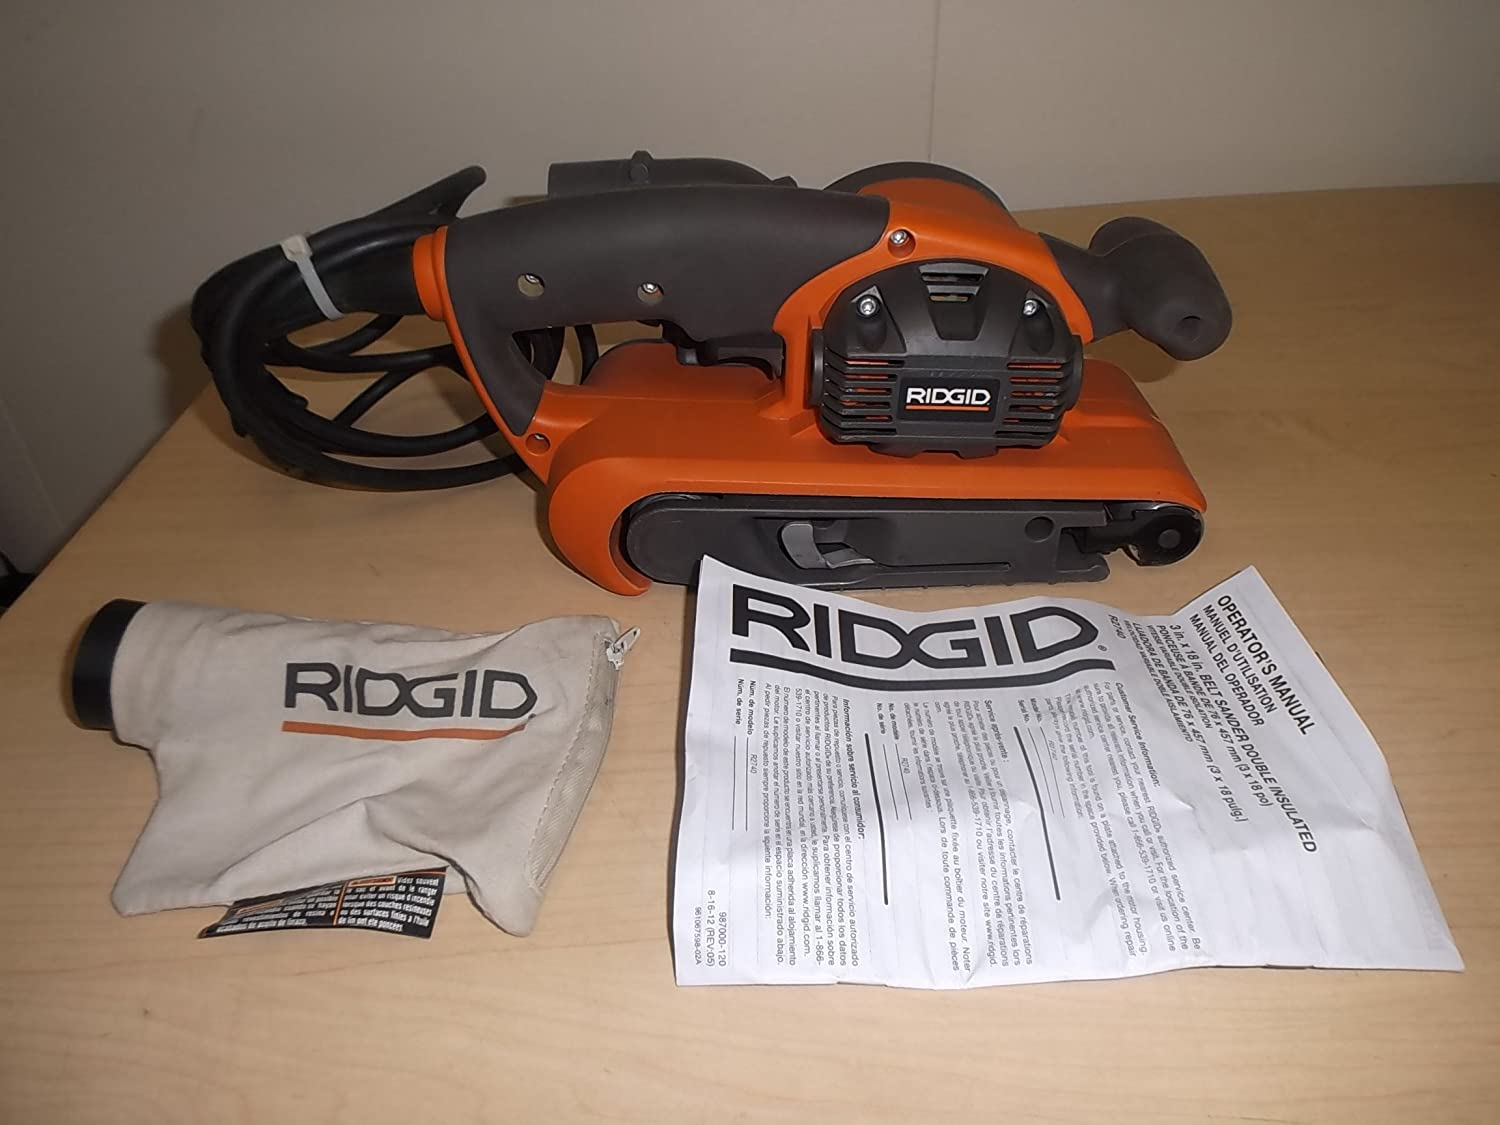 Ridgid 28533 featured image 5